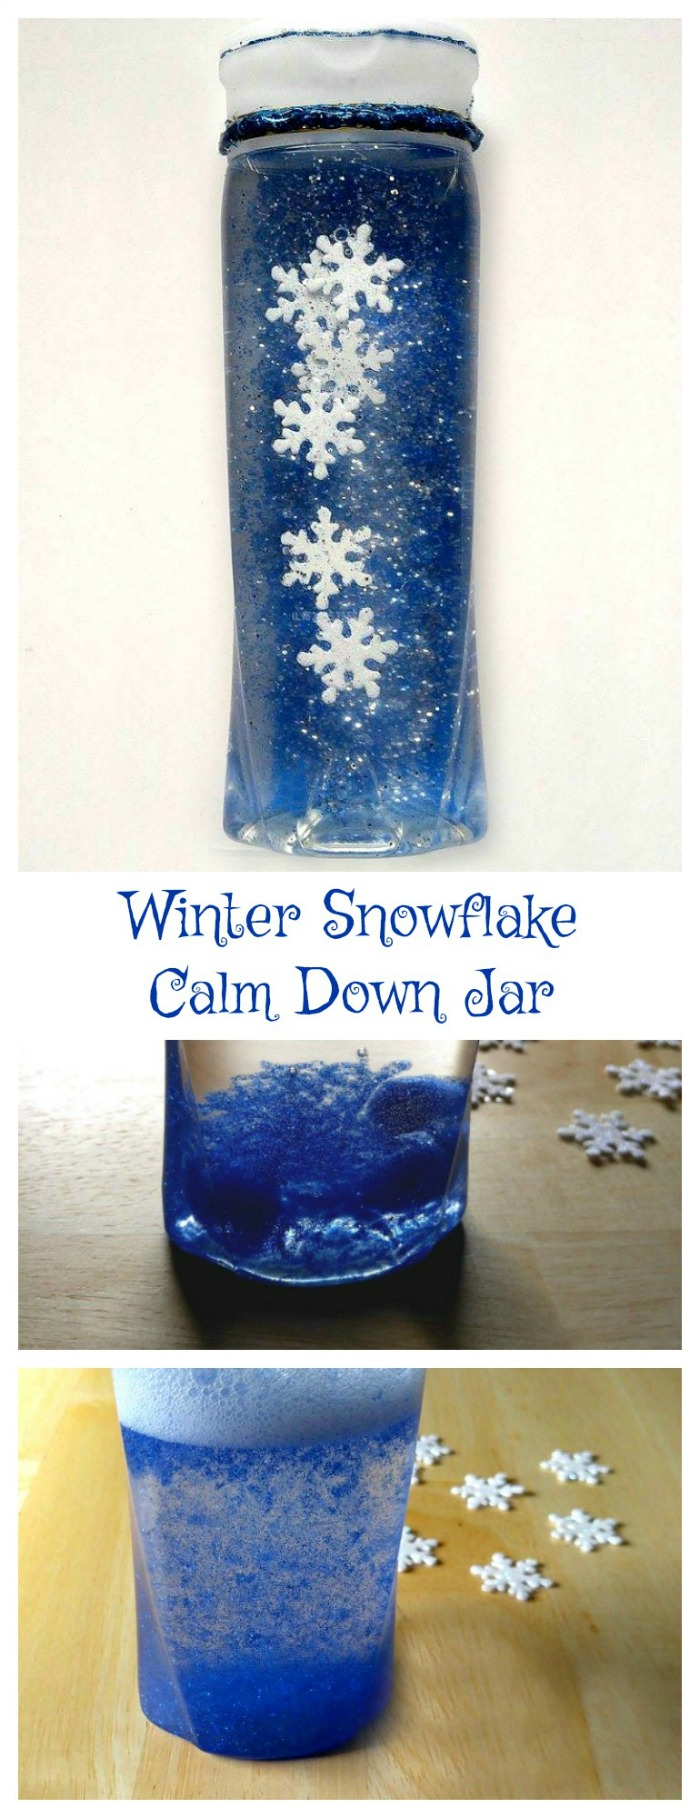 This Snowflake Calm Down Jar will help your children to relax and calm down when they are cooped up due to cold weather. They will love to see the snowflakes falling and it will keep them busy.